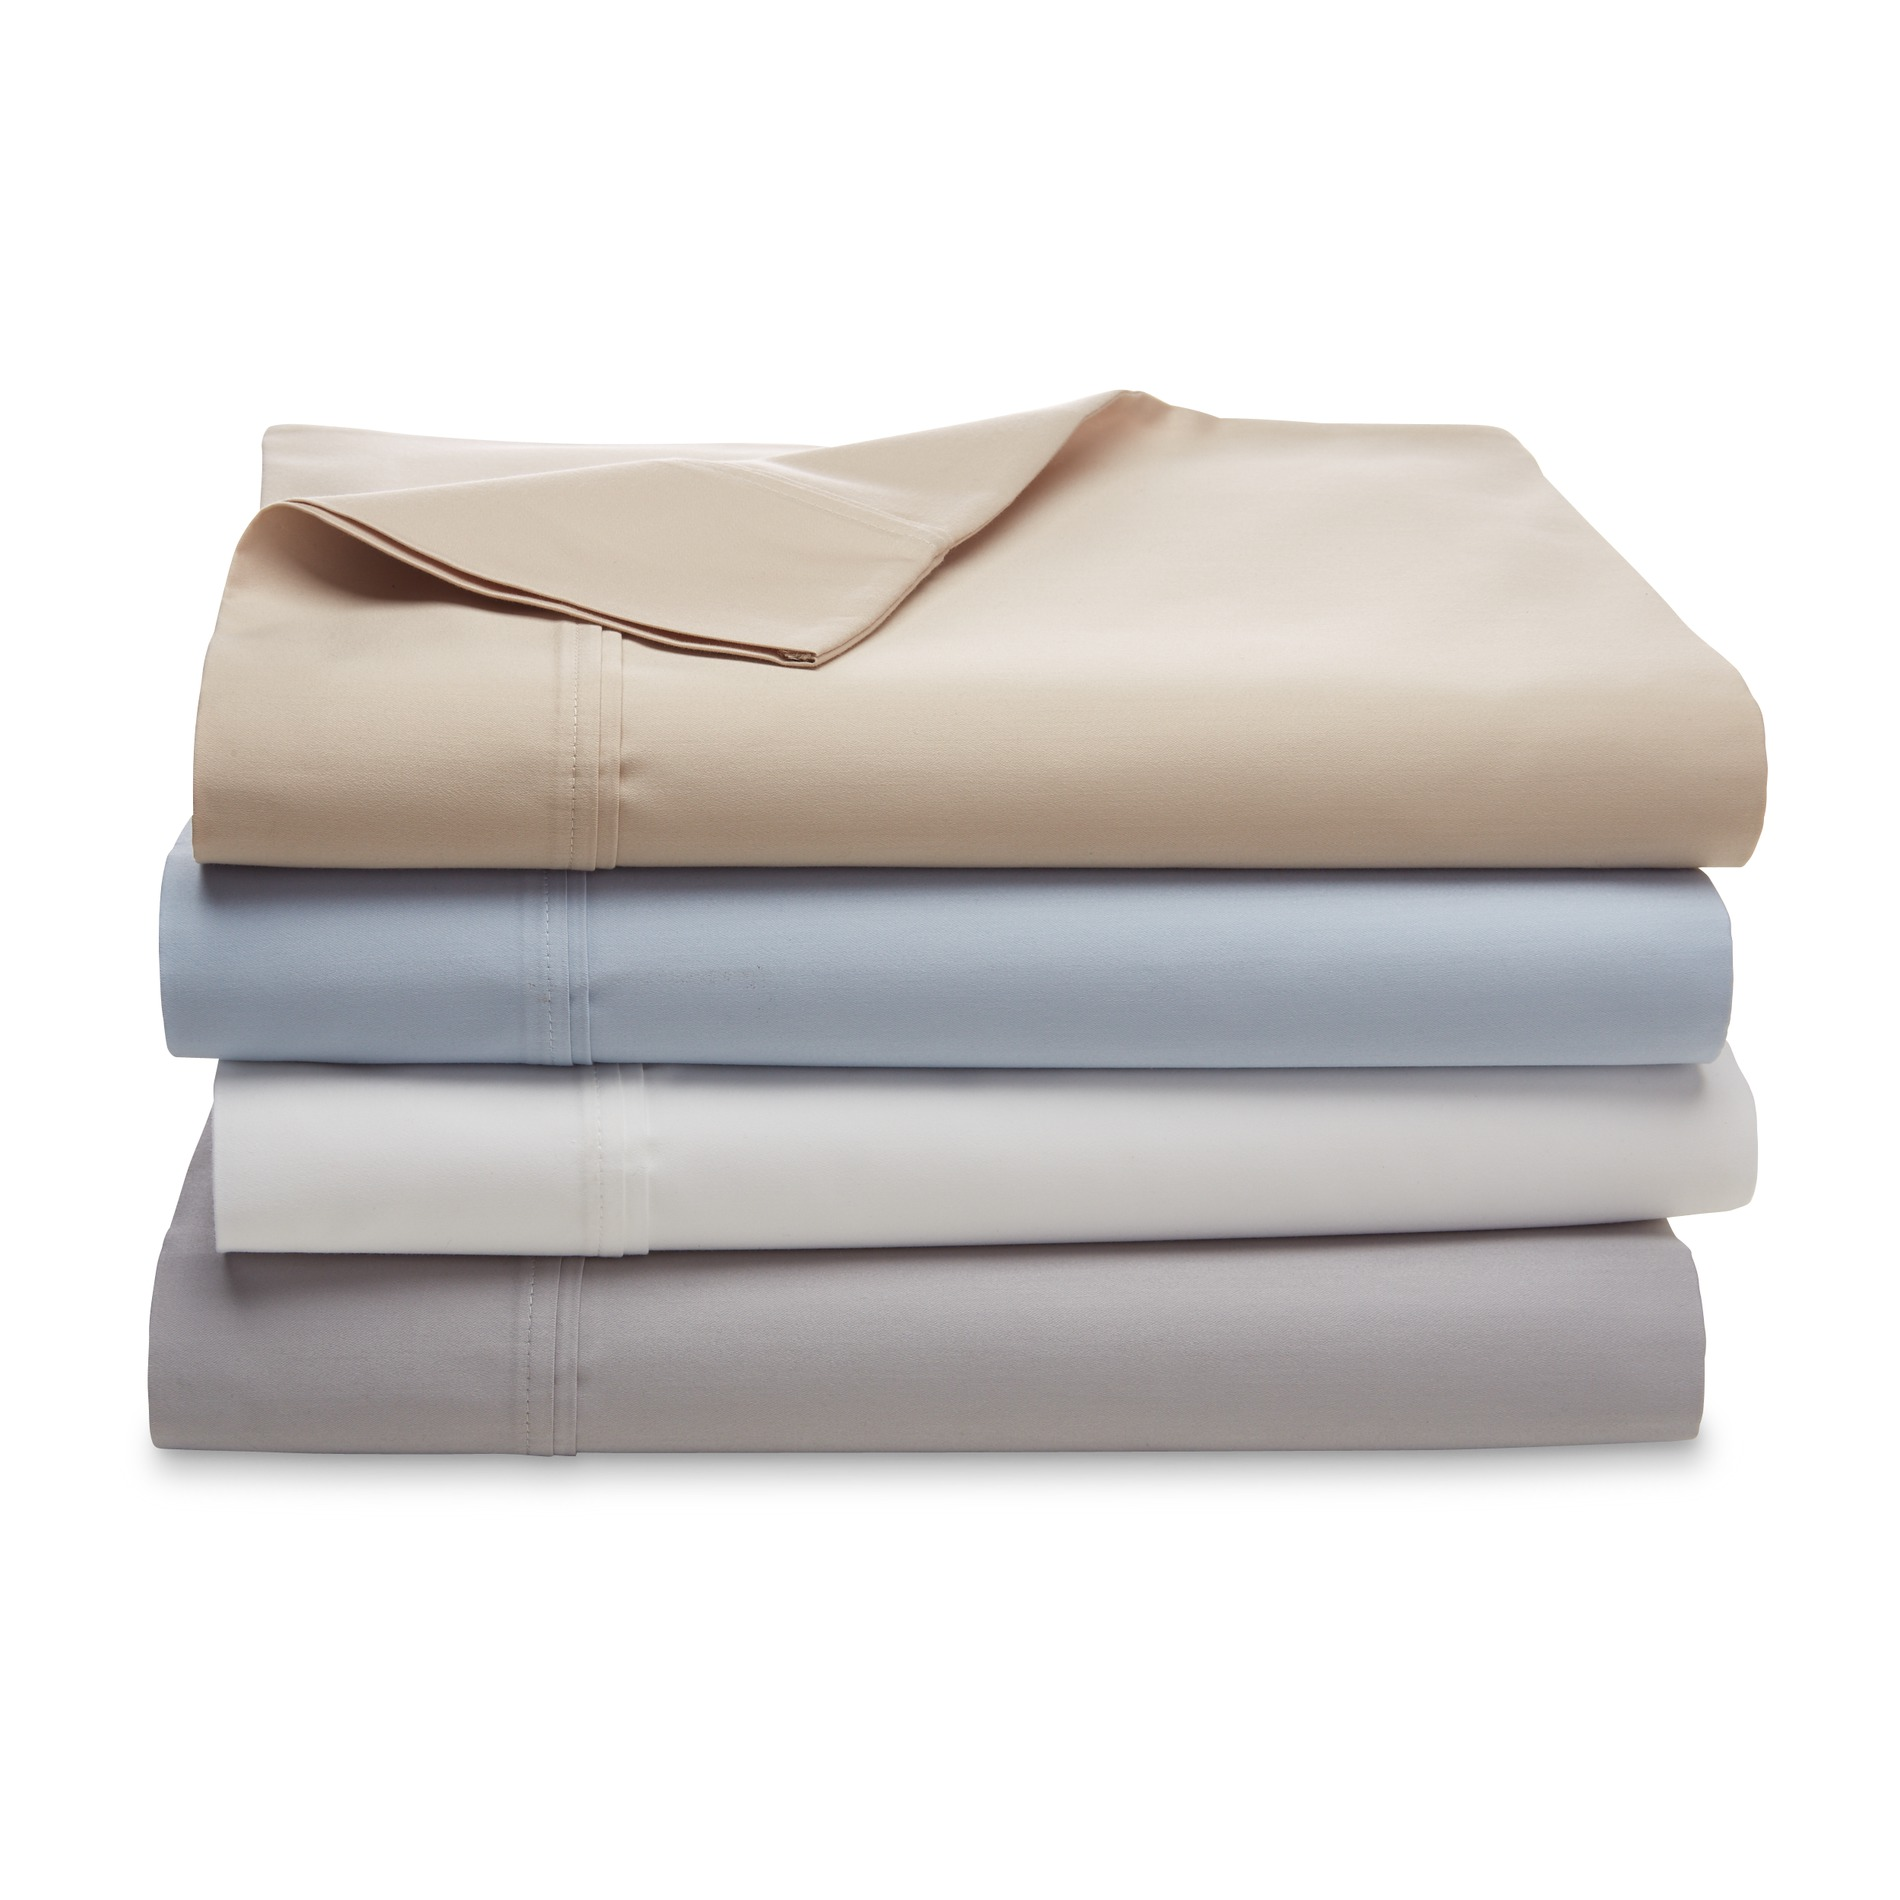 1000 Thread Count Sheets King 1000 Thread Count Sheet Set